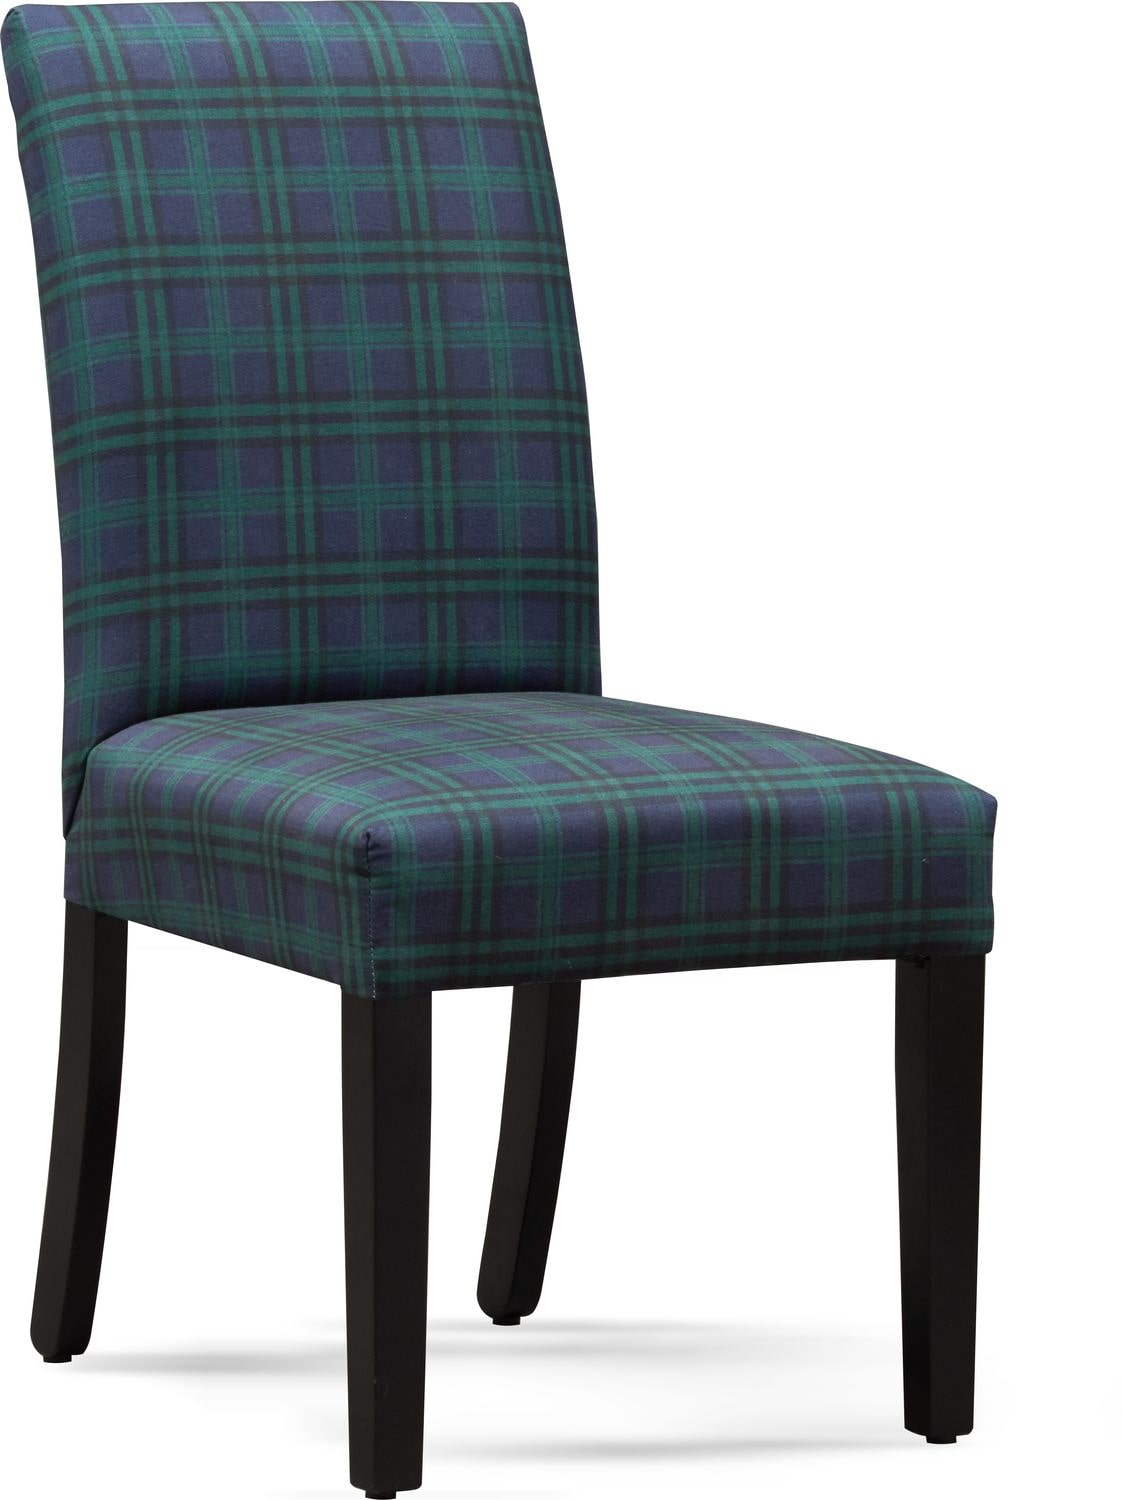 Dining Room Furniture - Adler Upholstered Side Chair - Plaid